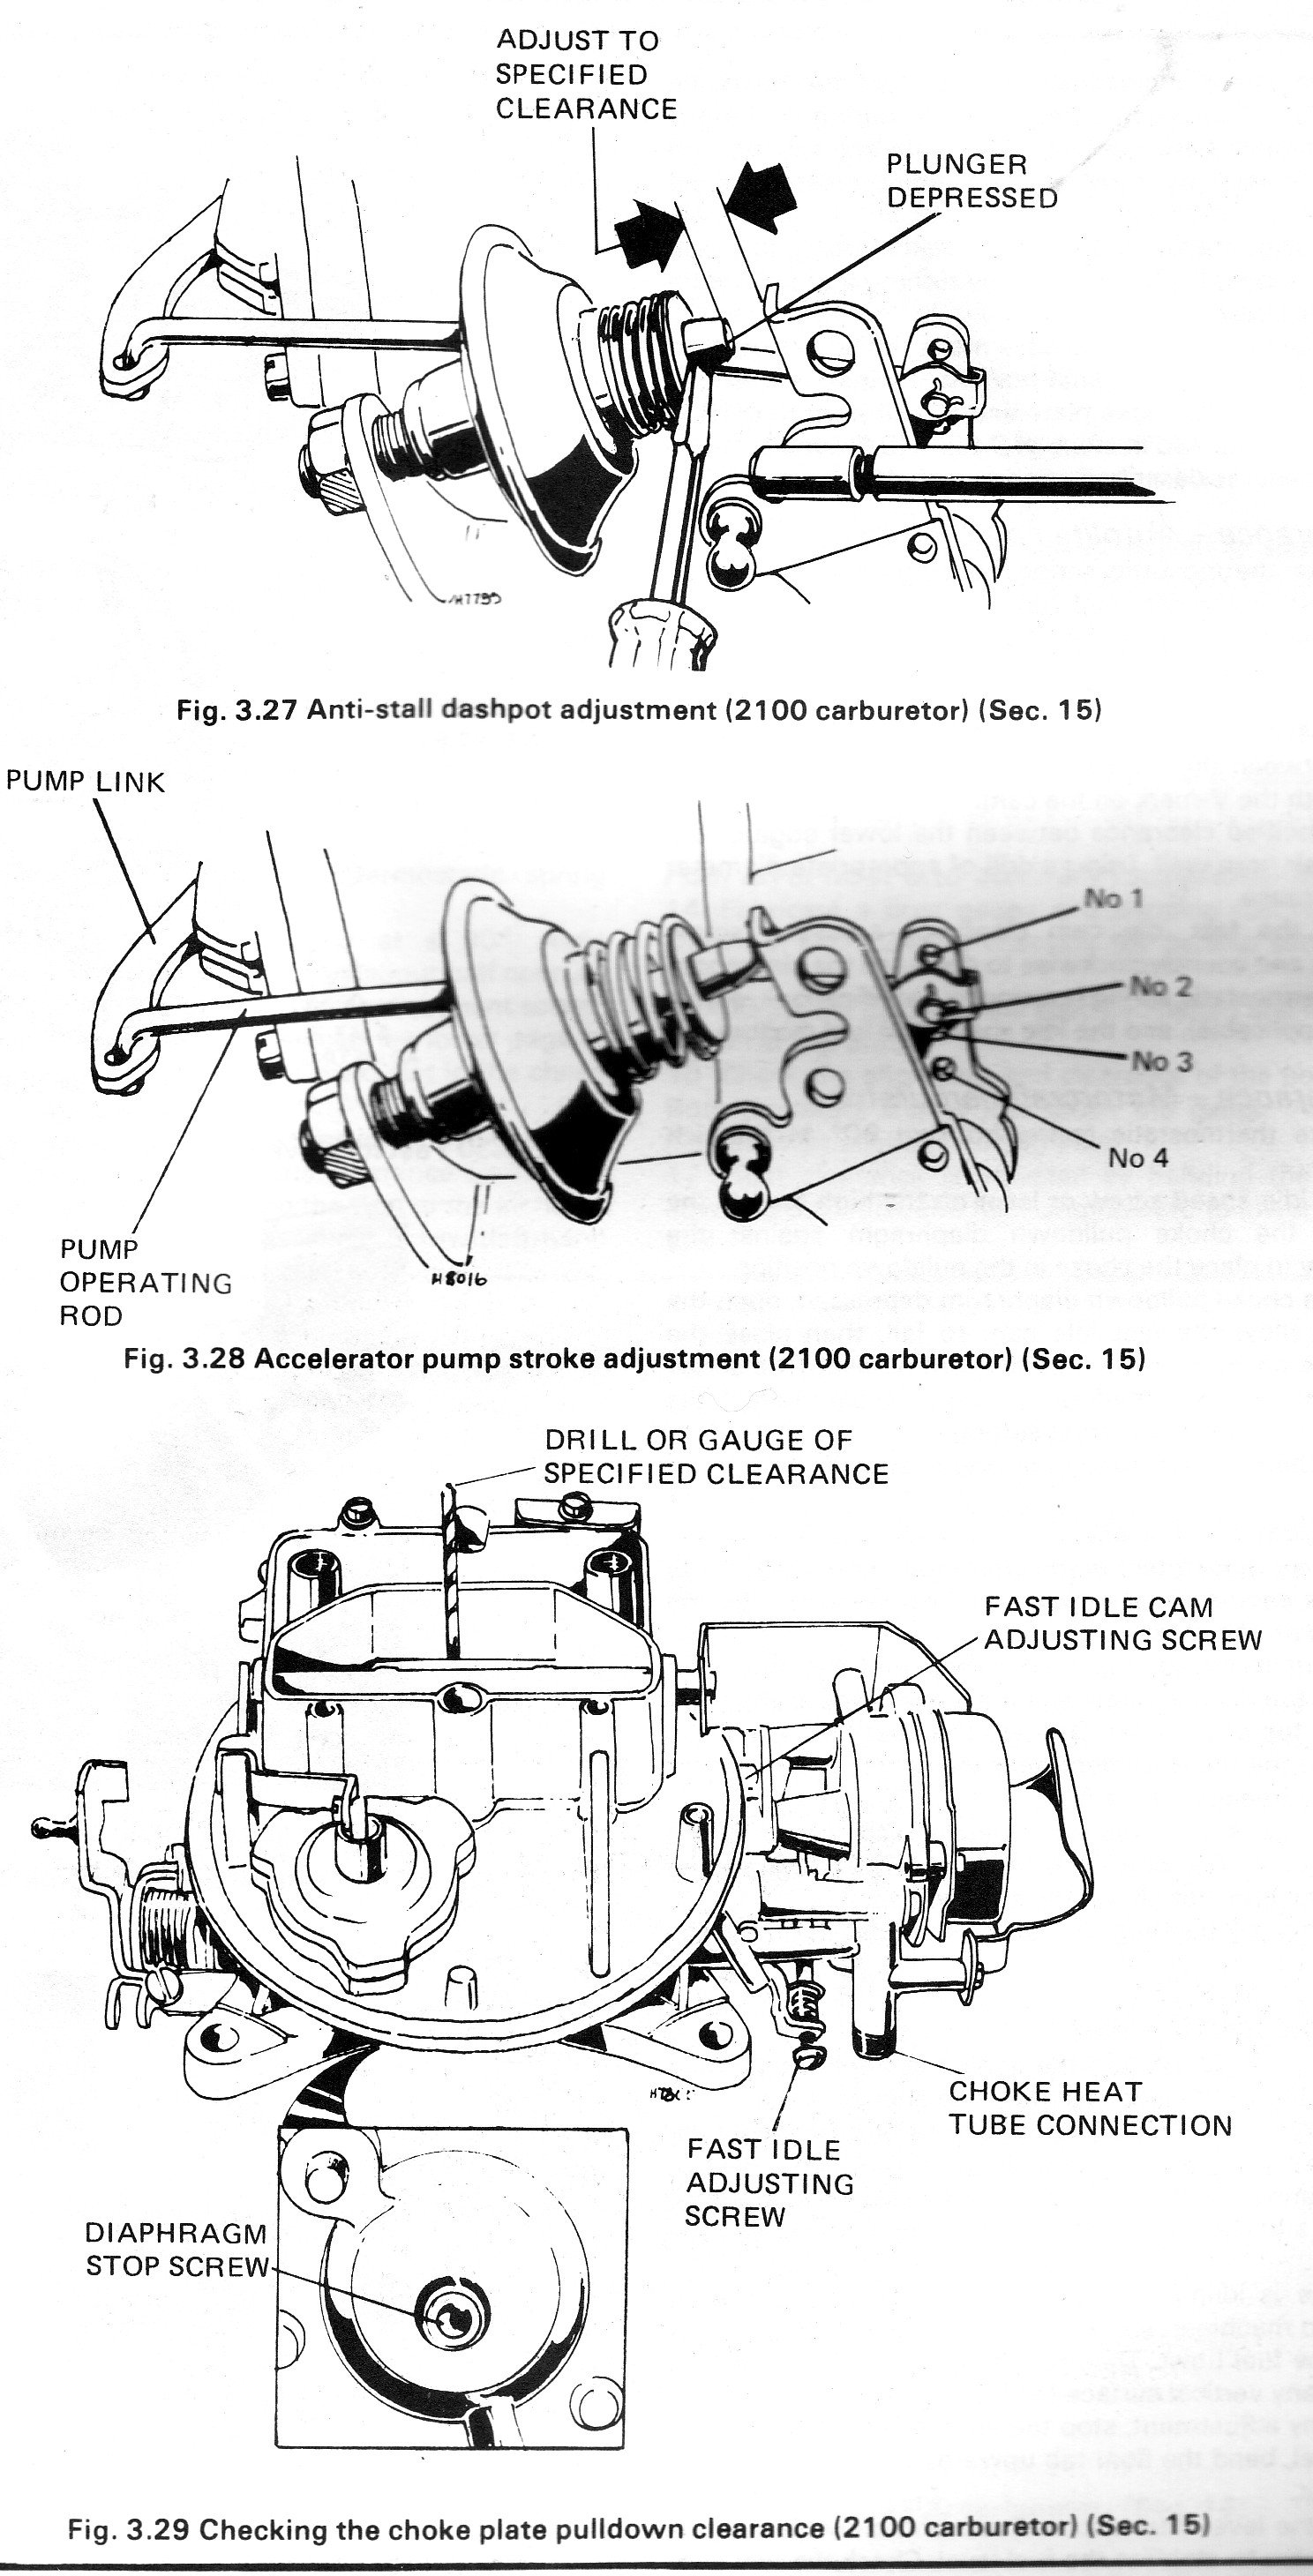 Ford Focus L Wiring Diagram together with Ford Mustang Condenser Tubes also Large additionally Ford Mustang Cylinder Engine together with Mustang Assembly. on ford mustang engine diagram